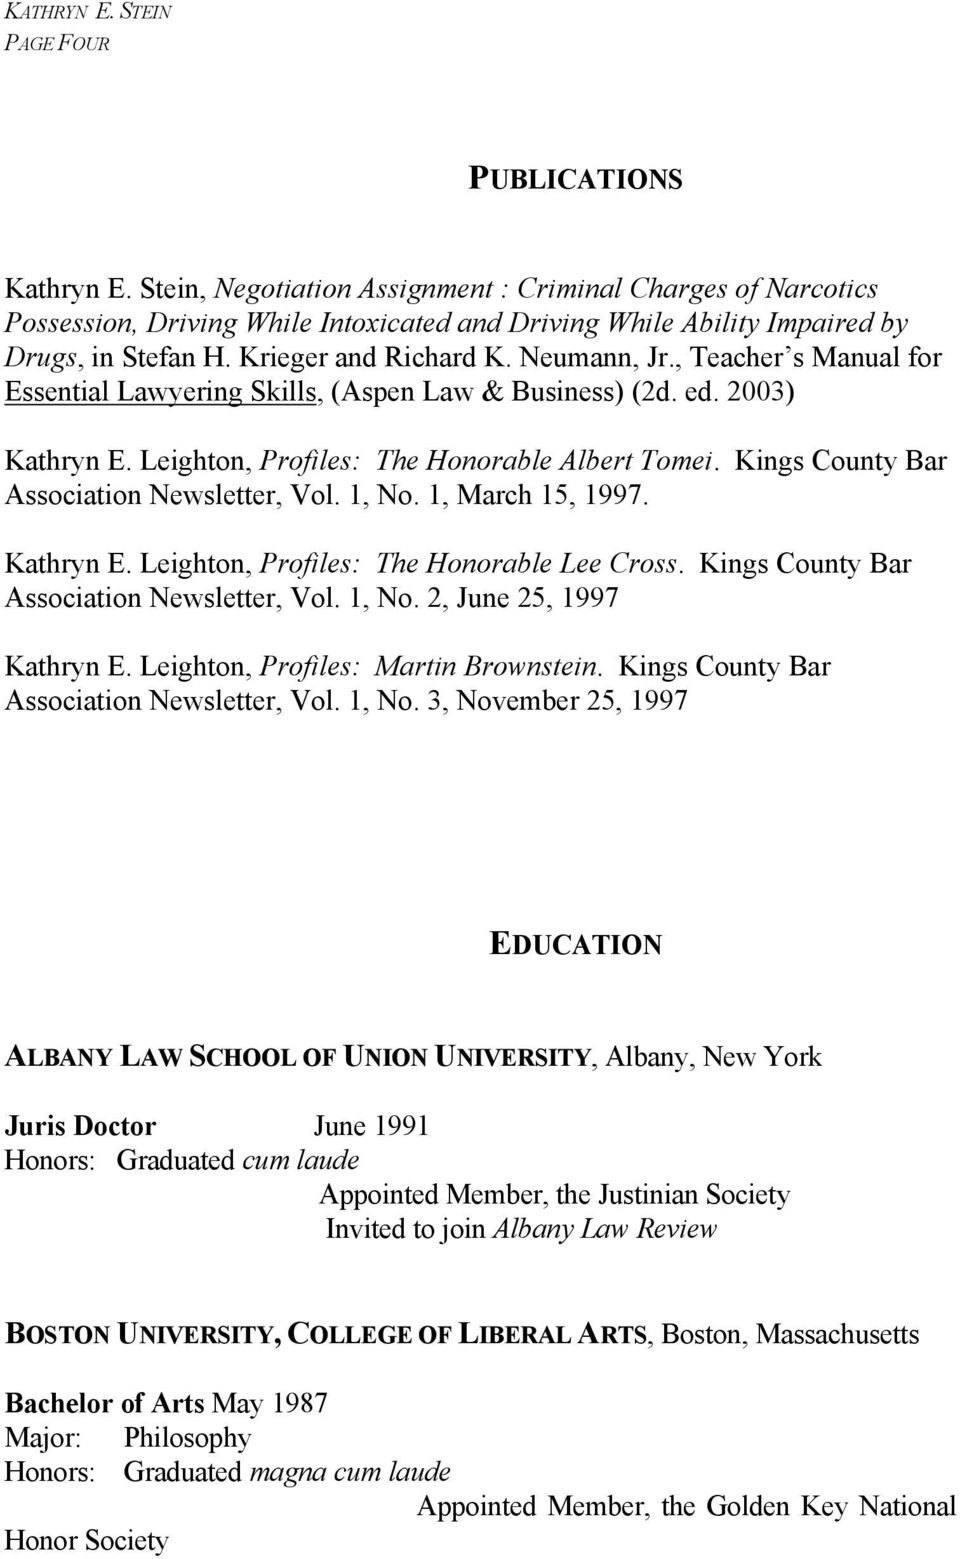 Kings County Bar Association Newsletter, Vol. 1, No. 1, March 15, 1997. Kathryn E. Leighton, Profiles: The Honorable Lee Cross. Kings County Bar Association Newsletter, Vol. 1, No. 2, June 25, 1997 Kathryn E.